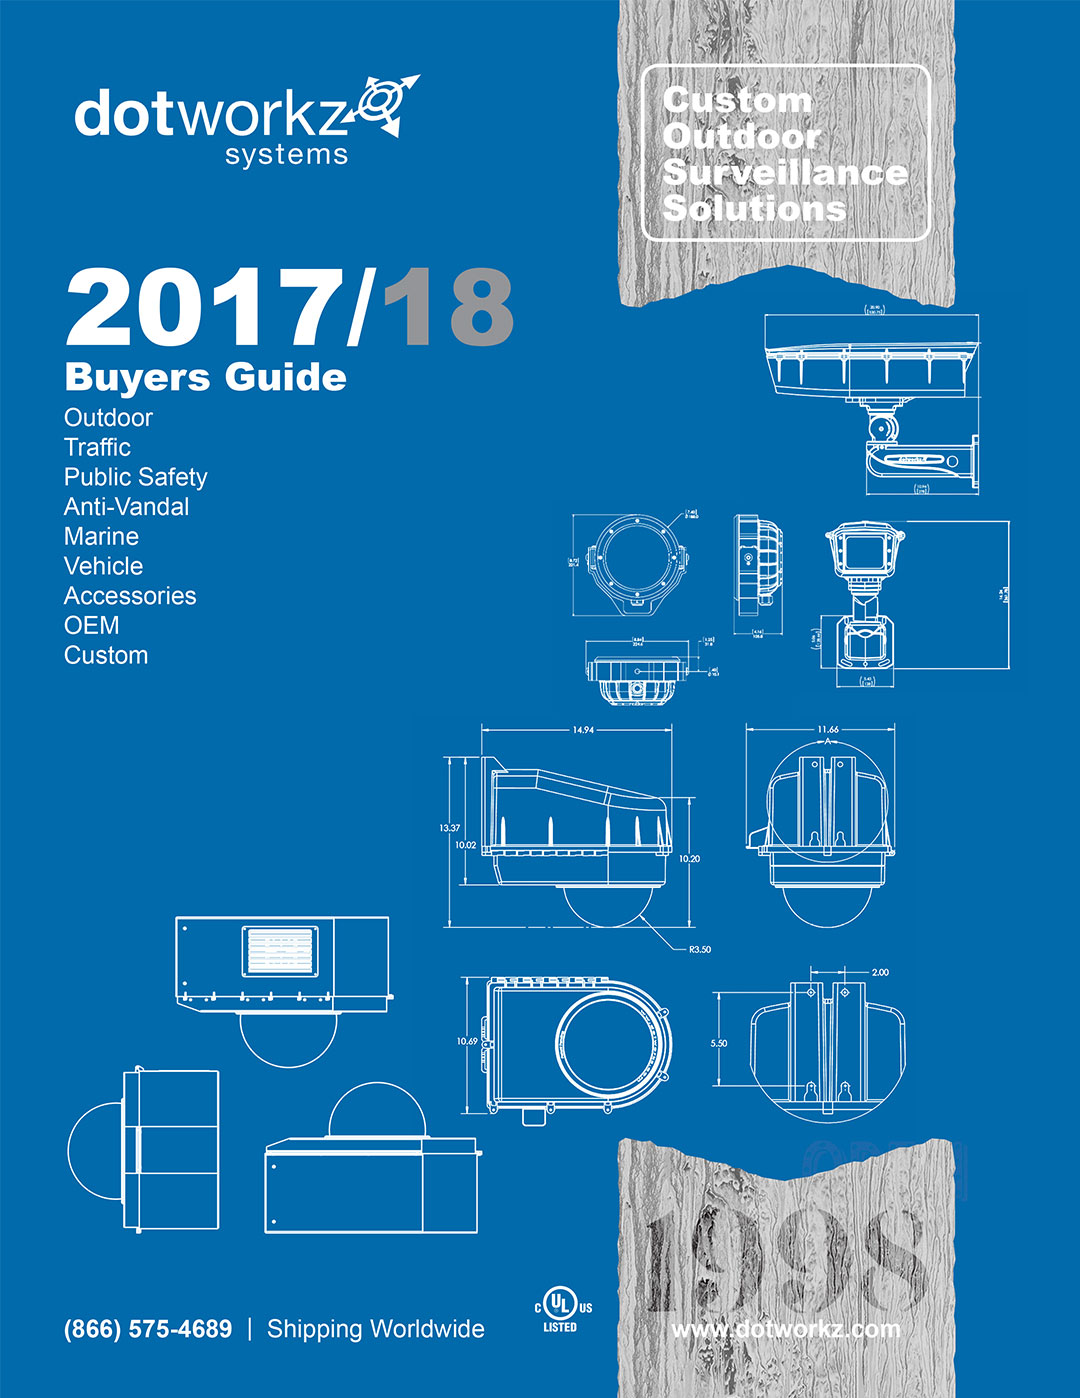 Dotworkz 2017 Buyers Guide Cover Page